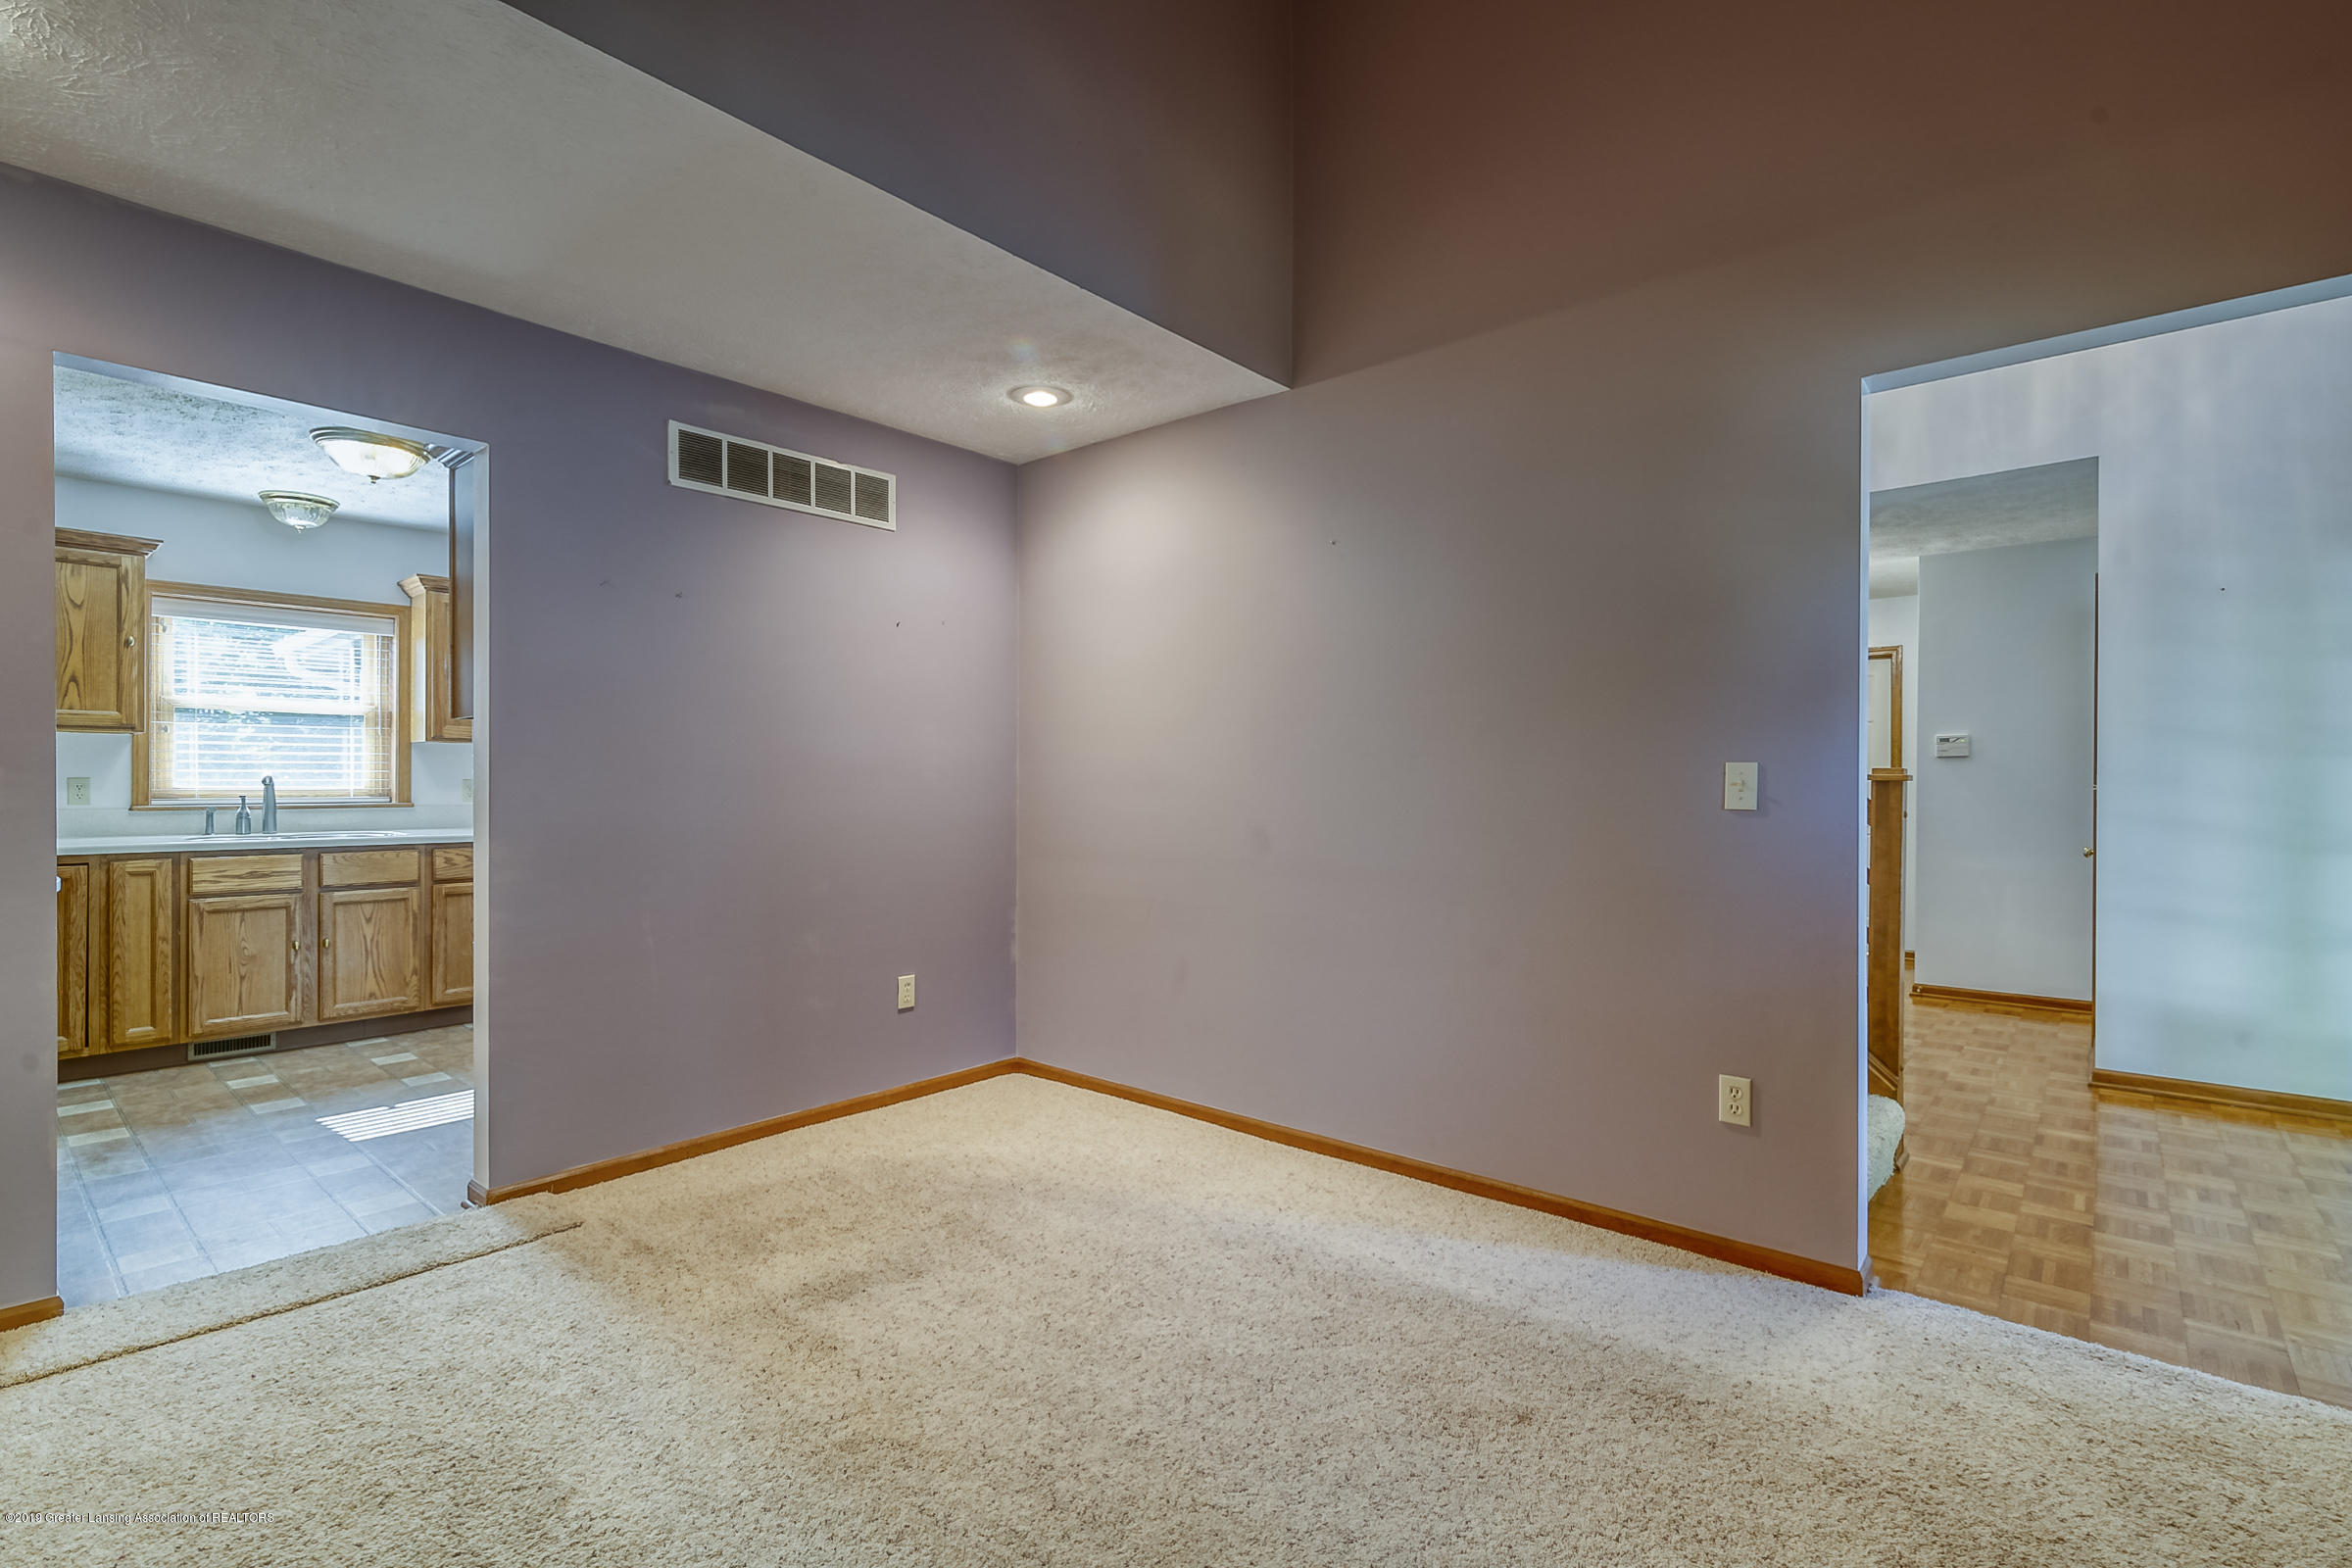 2343 Chisholm Ct - DINING ROOM - 15